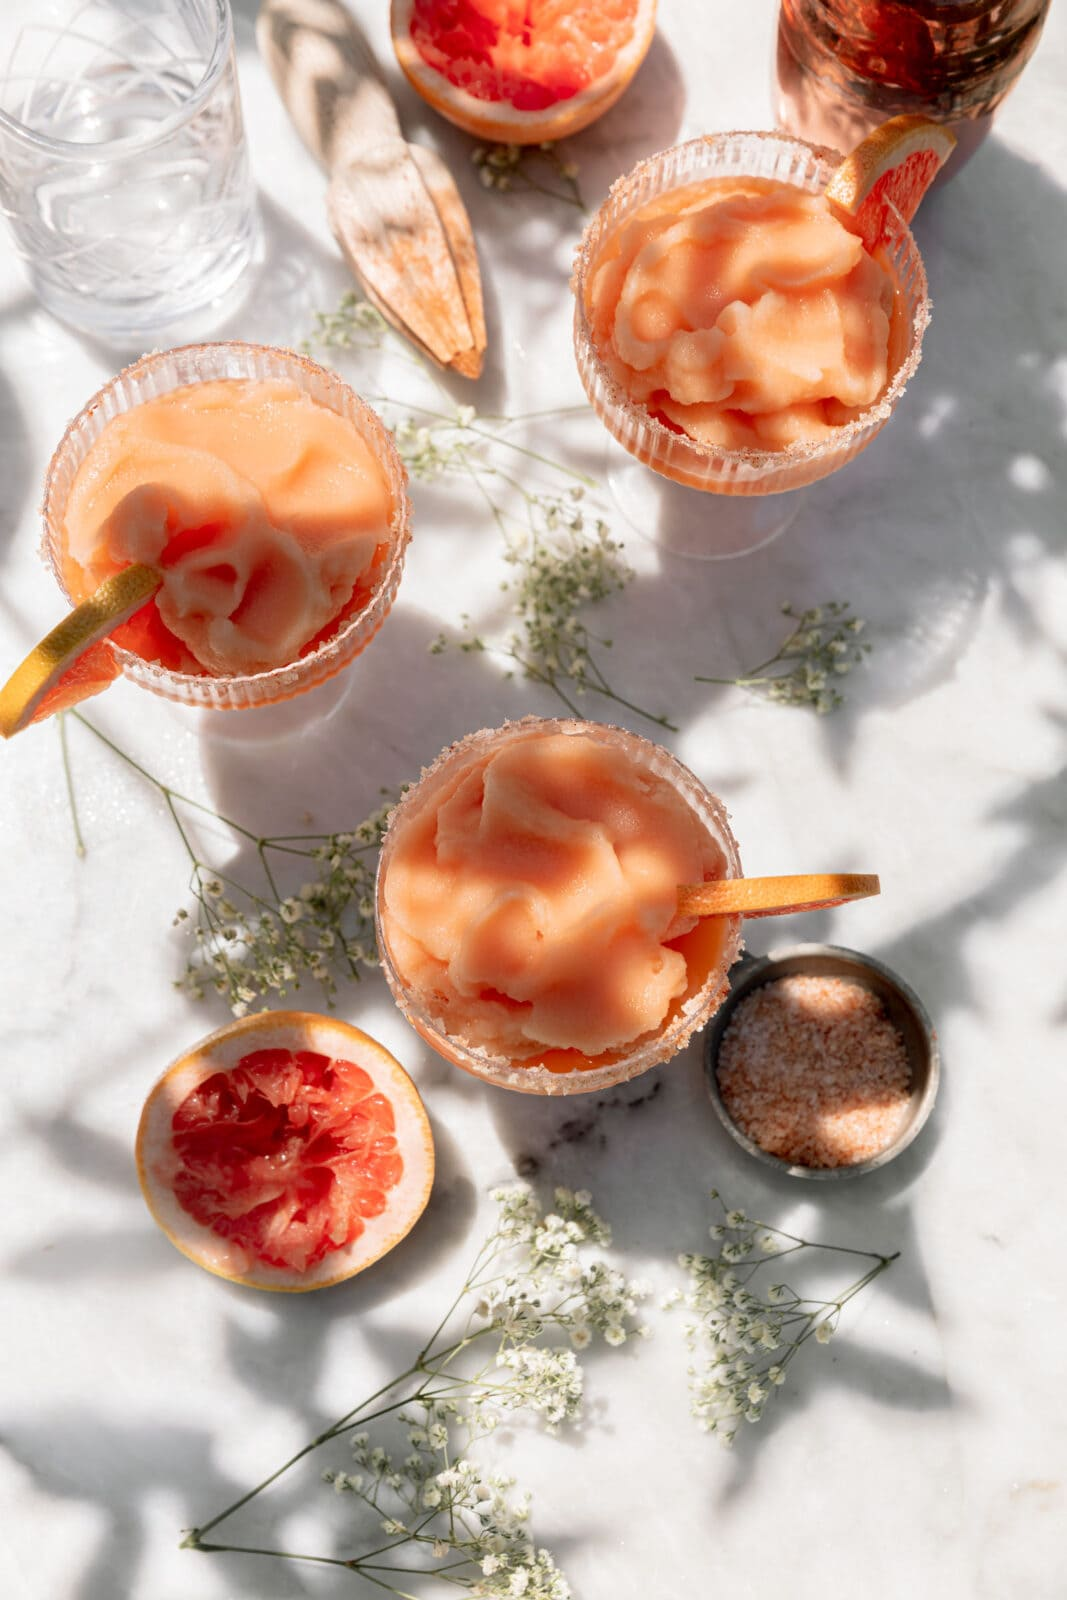 frozen palomas in glasses on a marble counter